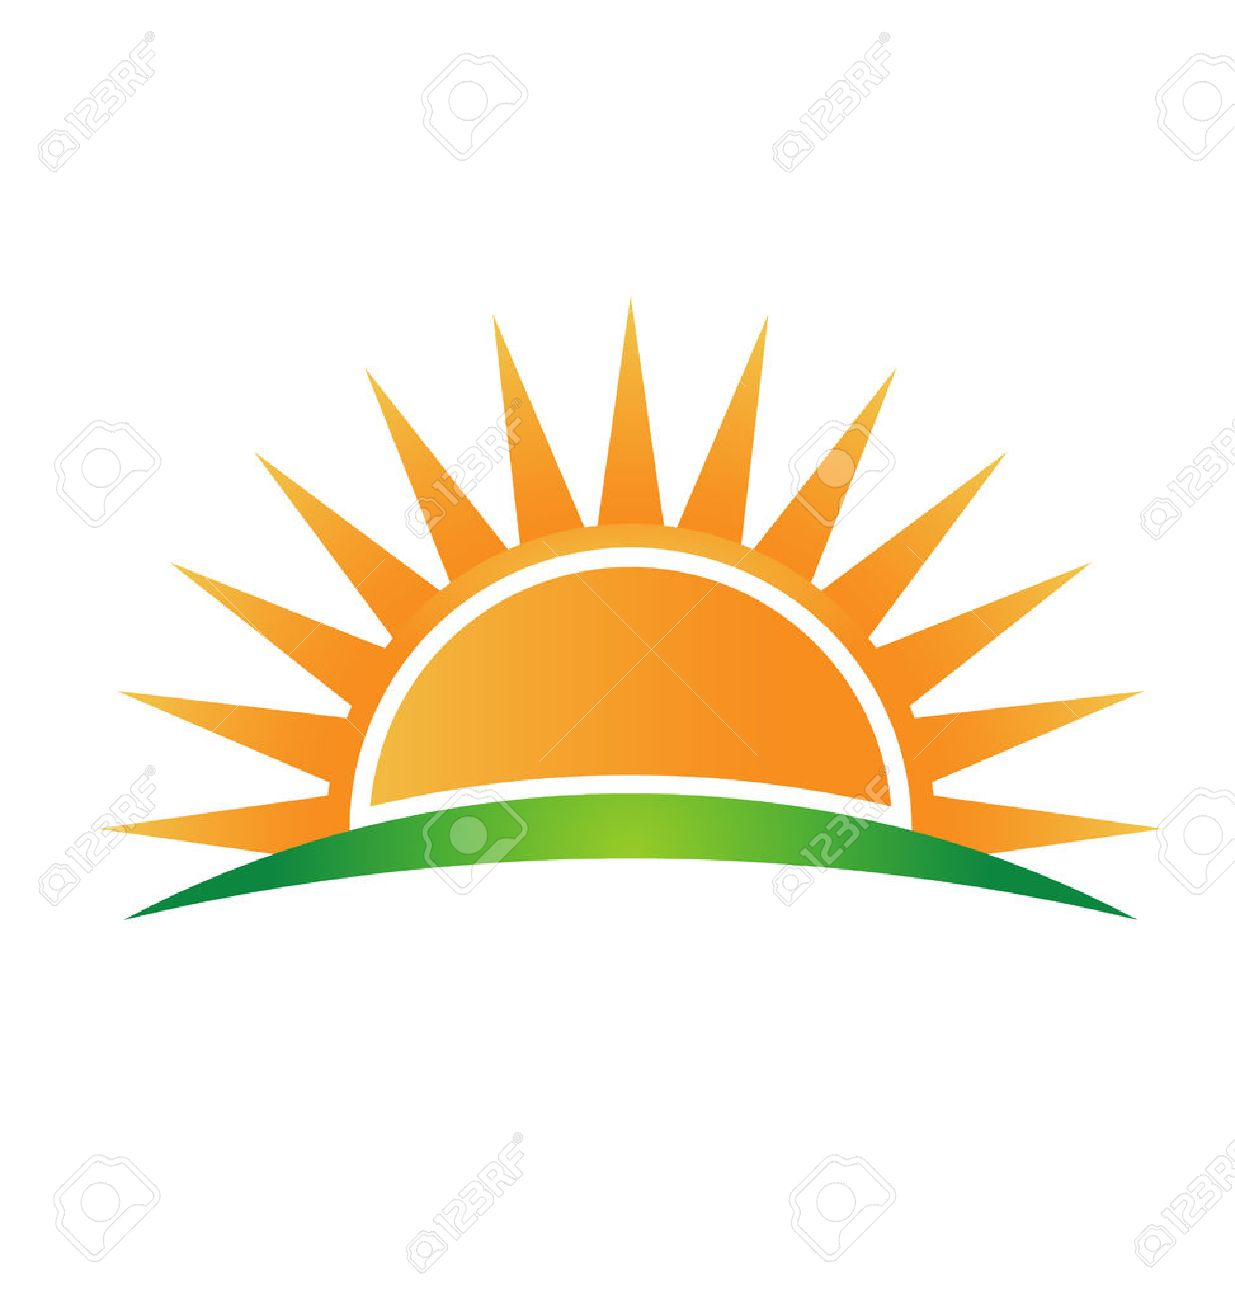 icon sun horizon royalty free cliparts vectors and stock rh 123rf com Grass Outline Grass Silhouette Vector Free